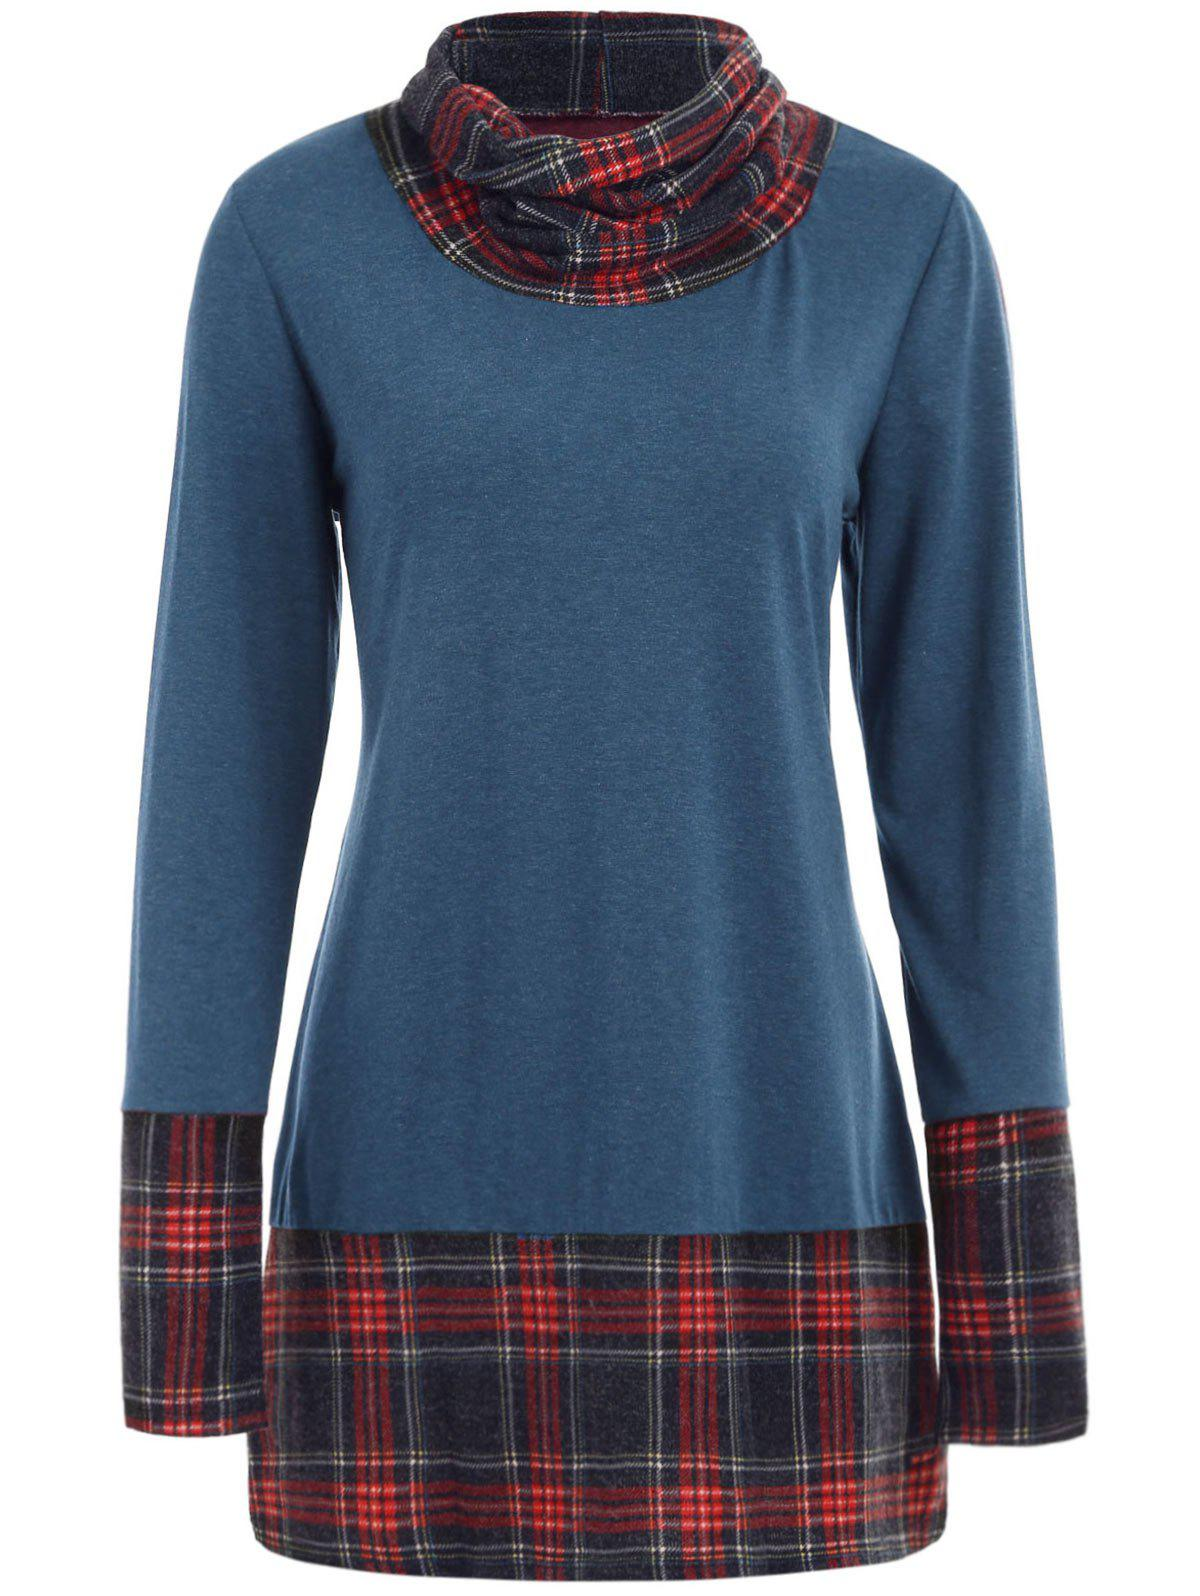 Latest Cowl Neck Plaid Detail Plus Size Sweatshirt